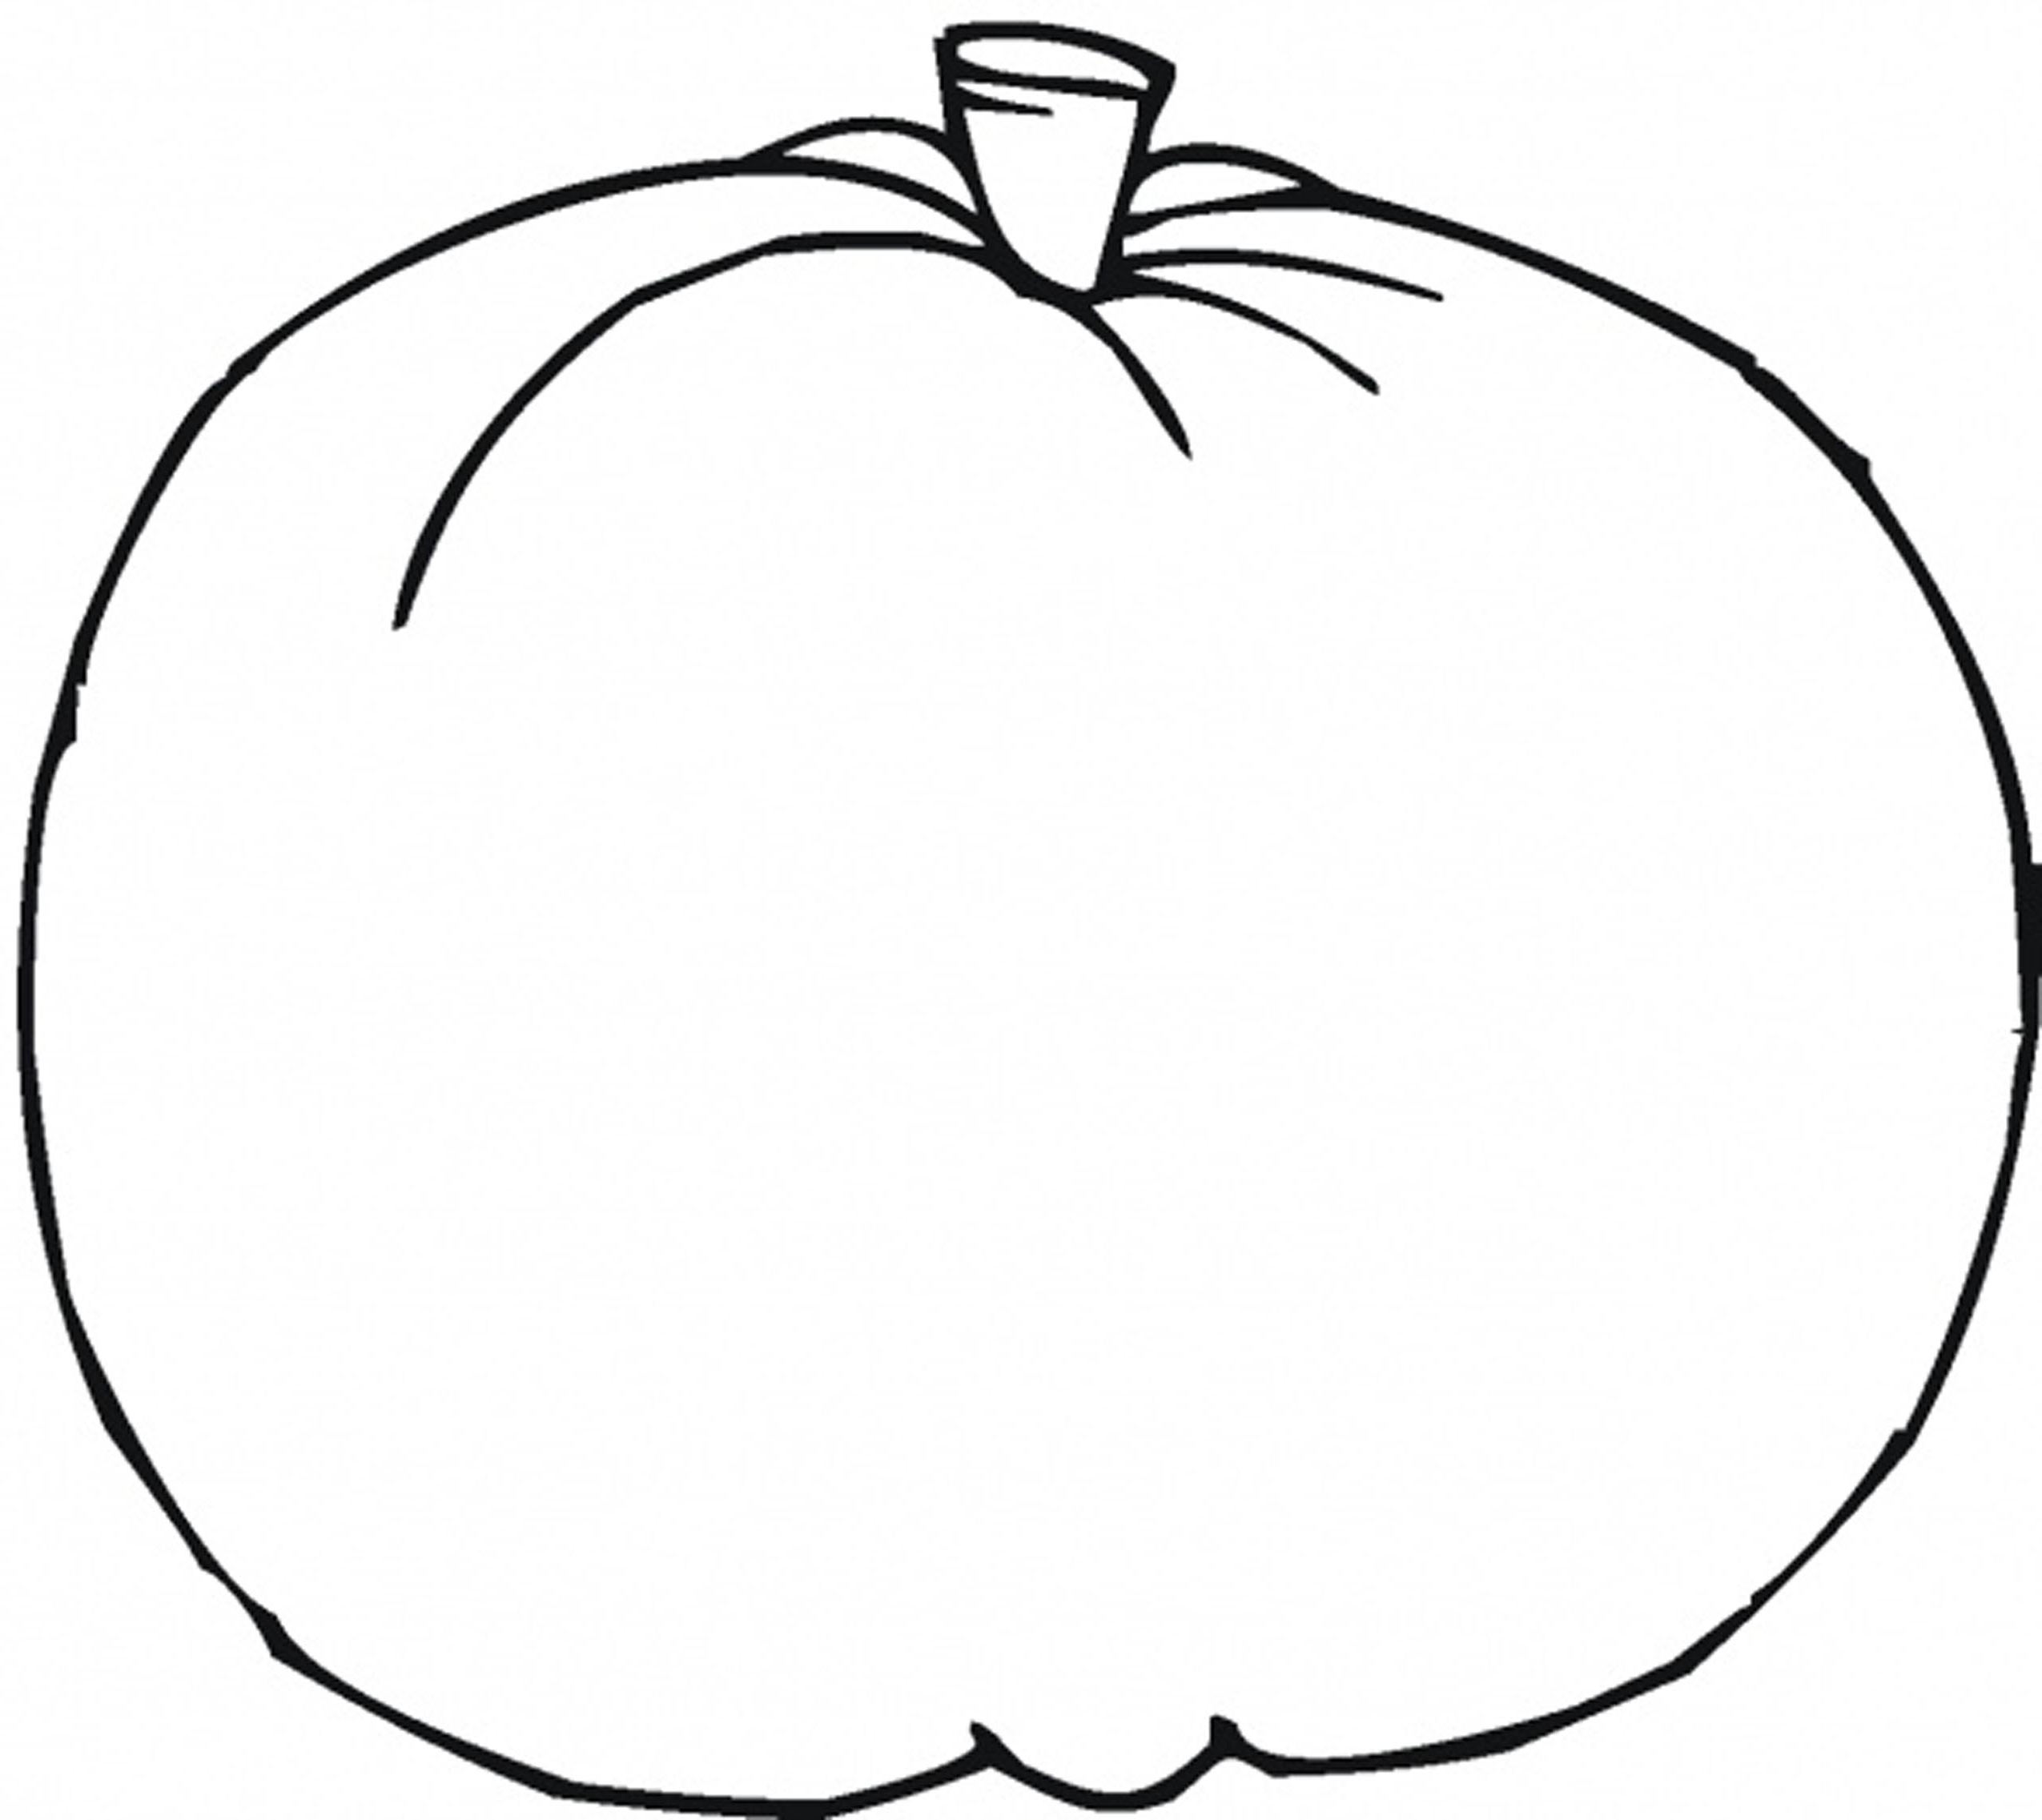 2550x2273 Coloring Book Pumpkin Pages For Kids Square Scary Printable